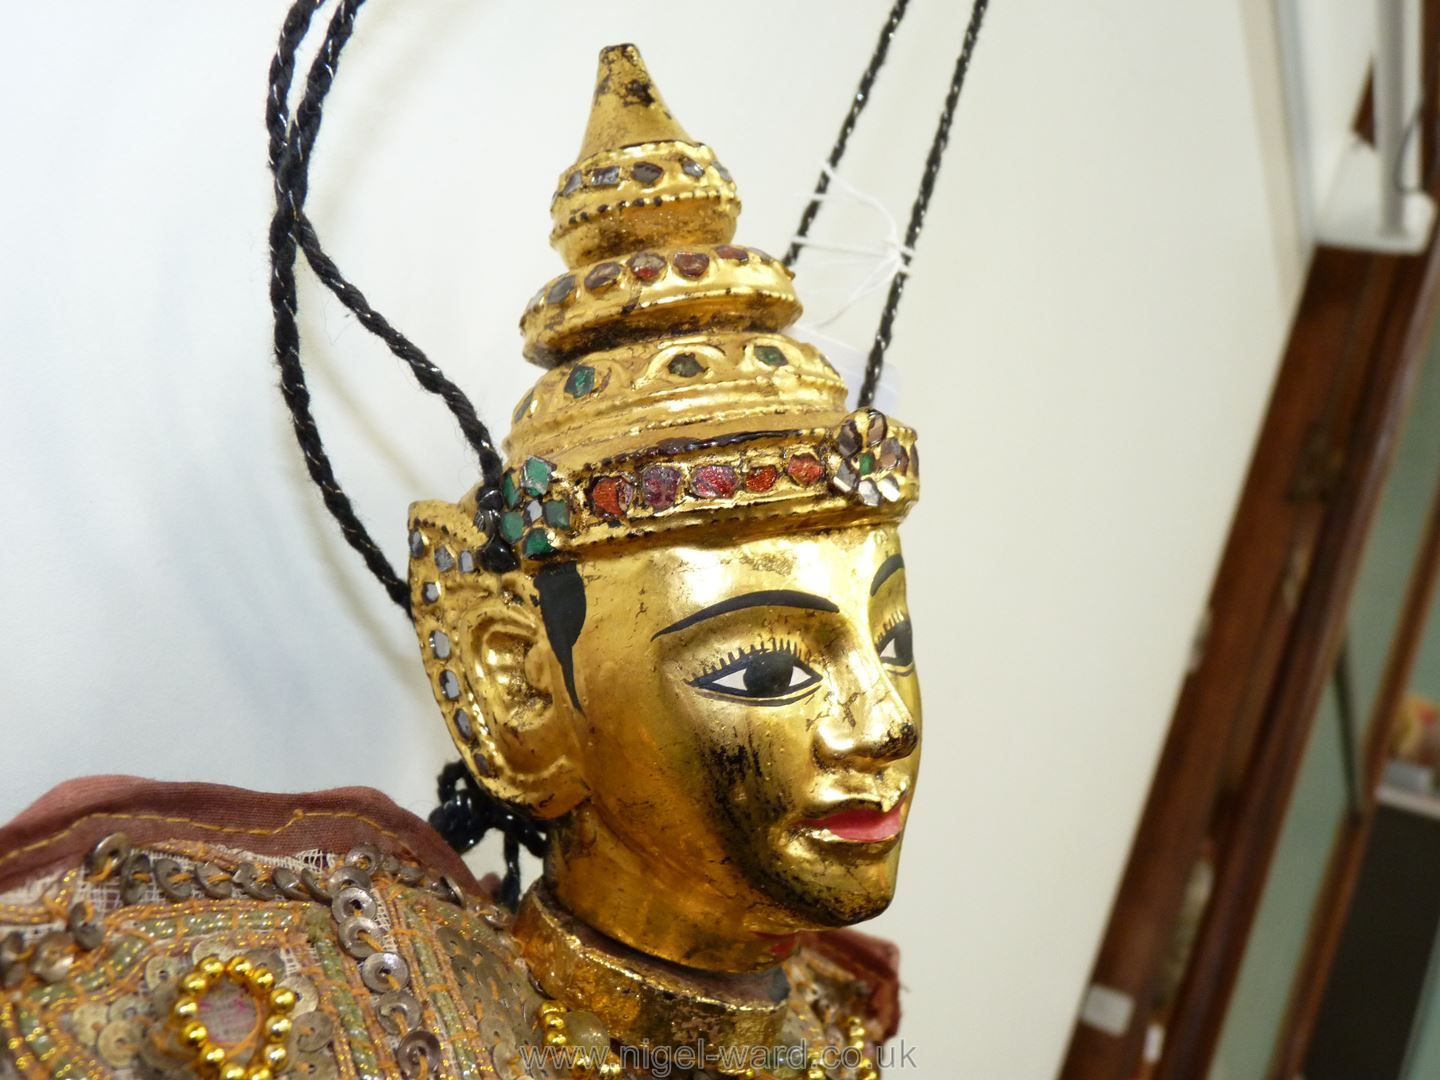 An ornate Thai Marionette richly decorated with sequins, 16 1/2'' tall approx. - Image 4 of 7